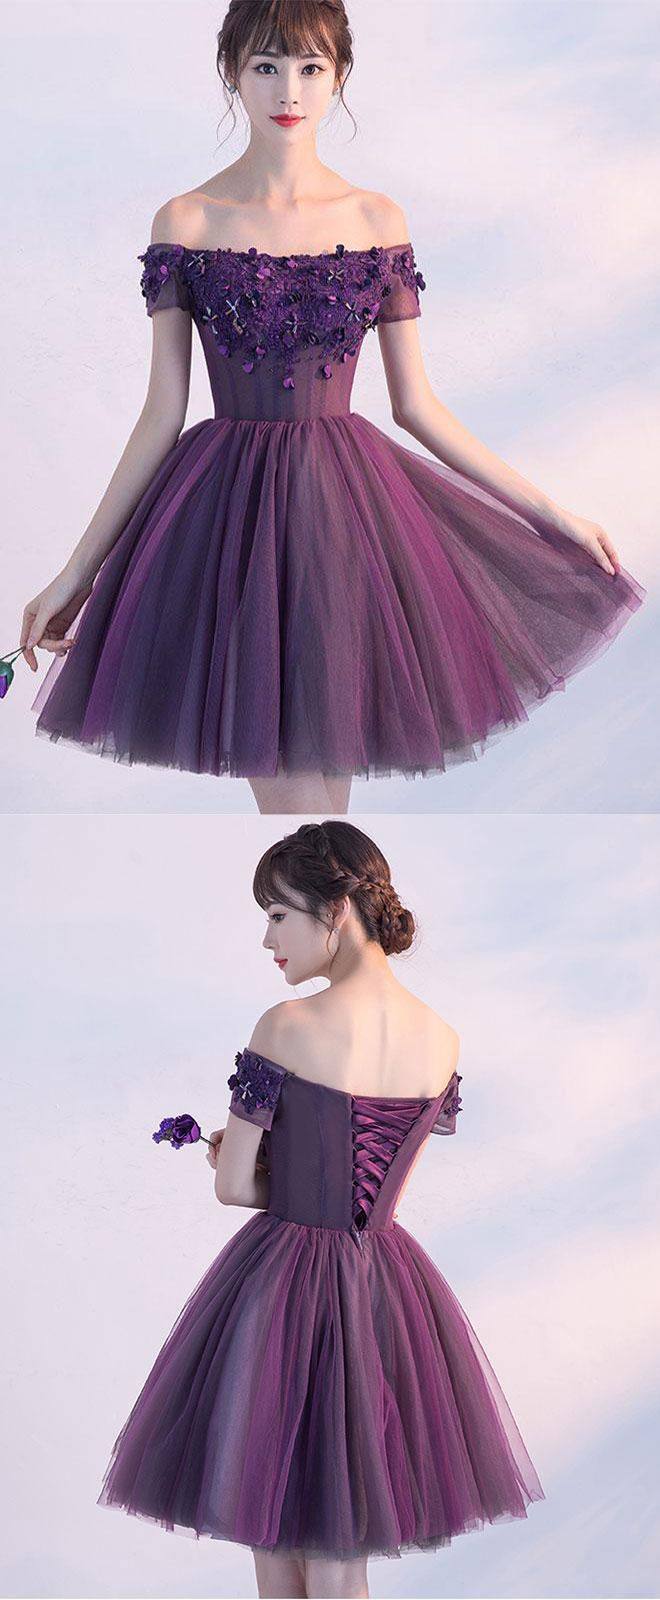 Cute A line purple off shoulder short prom dress, homecoming dress